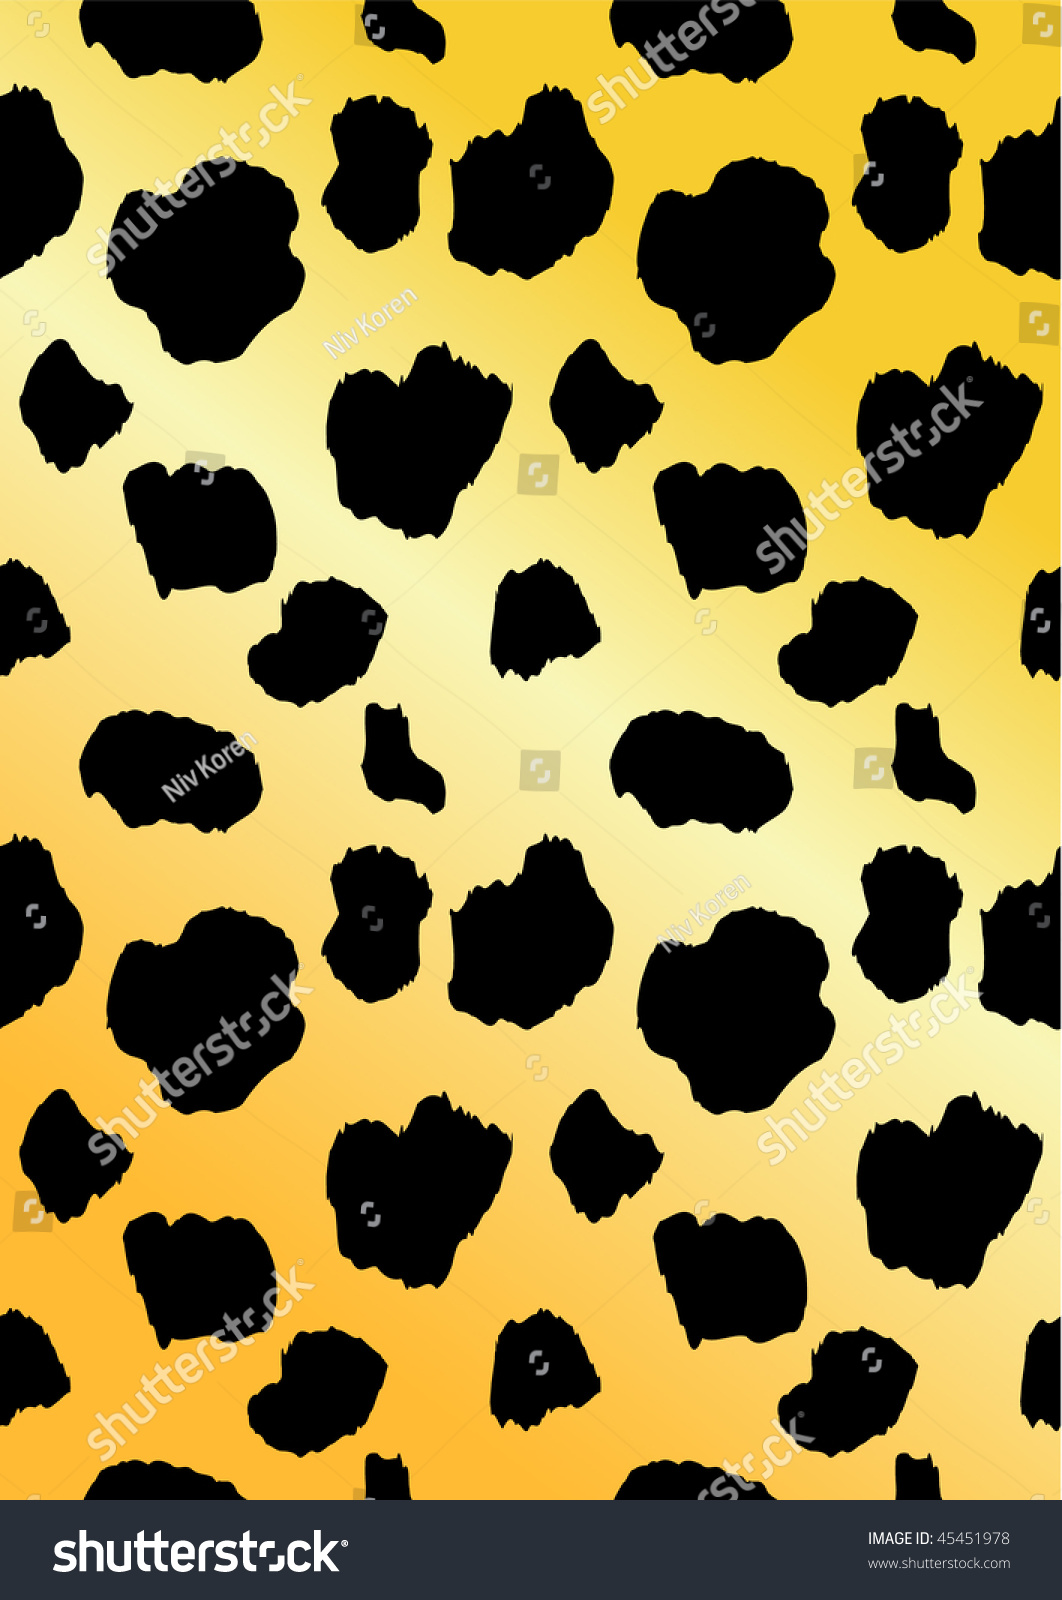 animal skin patterns seamless - photo #23